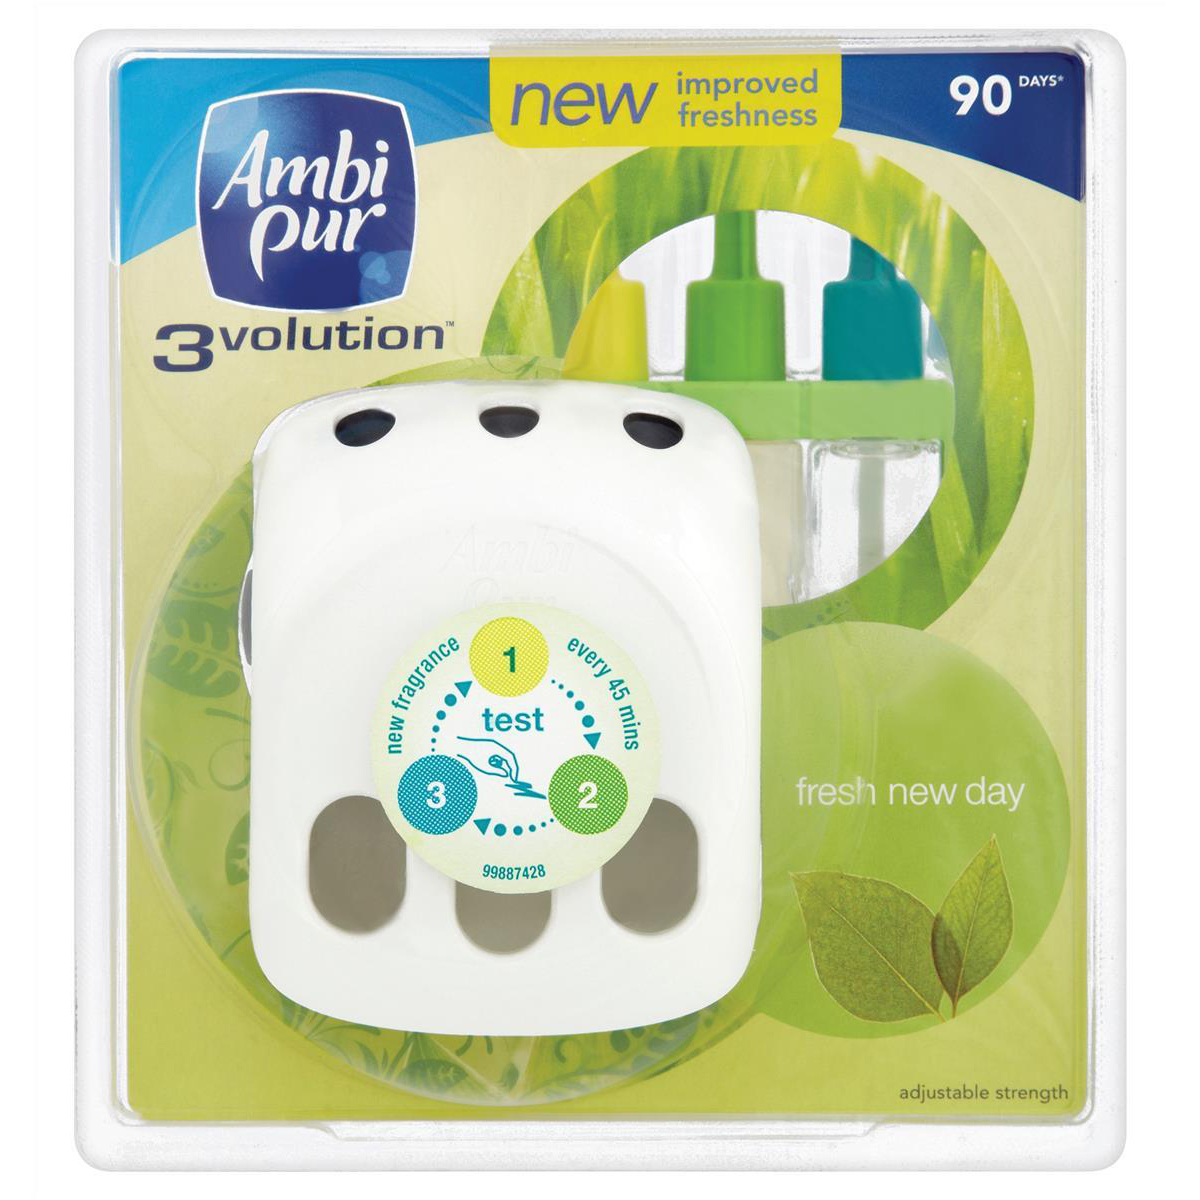 Air Freshener Ambi Pur 3volution Fragrance Unit Device Only Ref 95535